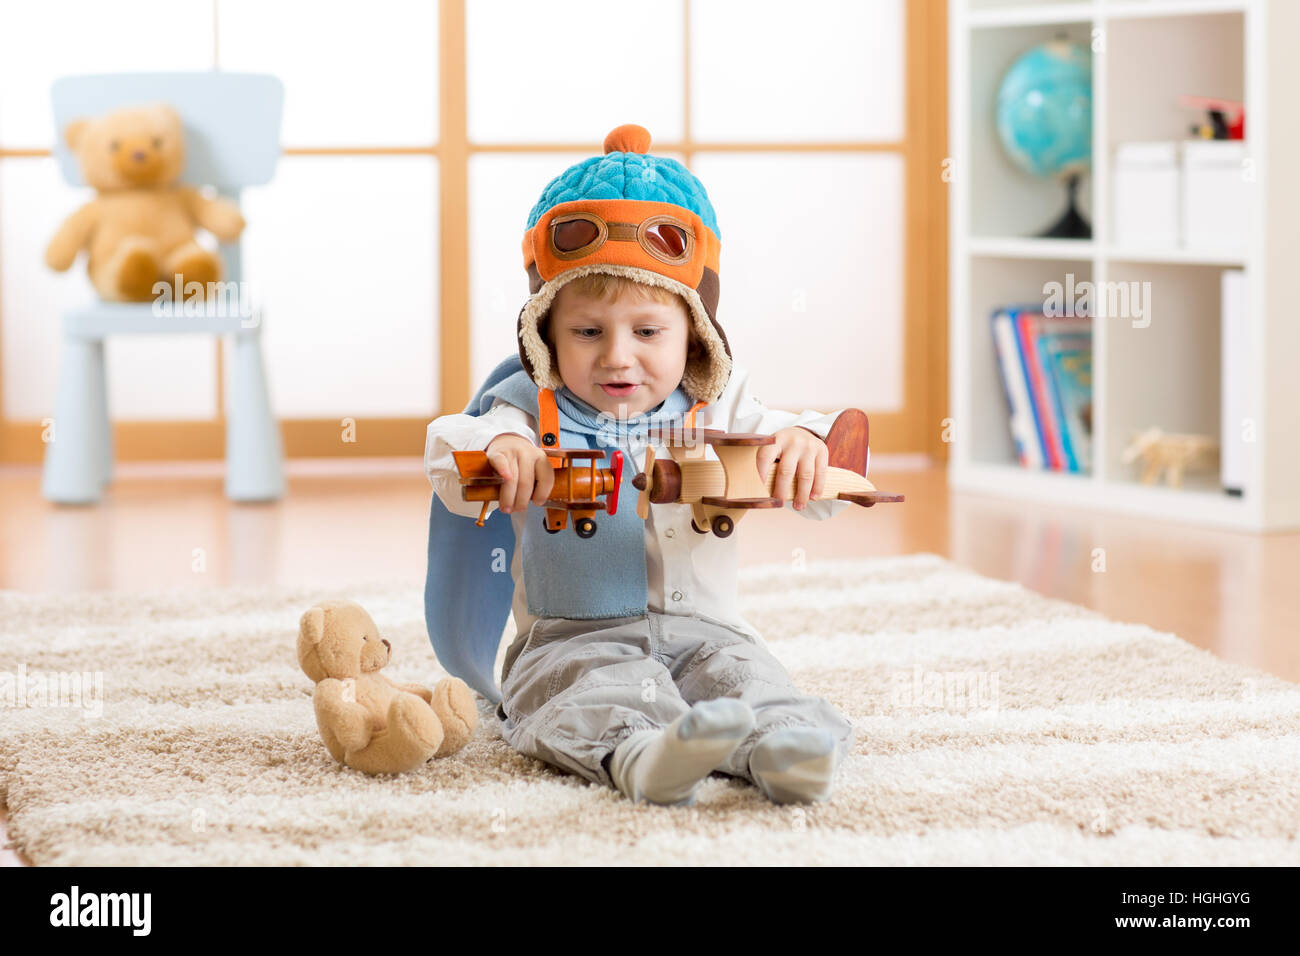 Happy kid boy playing with toy airplane à la maison dans sa chambre Photo Stock